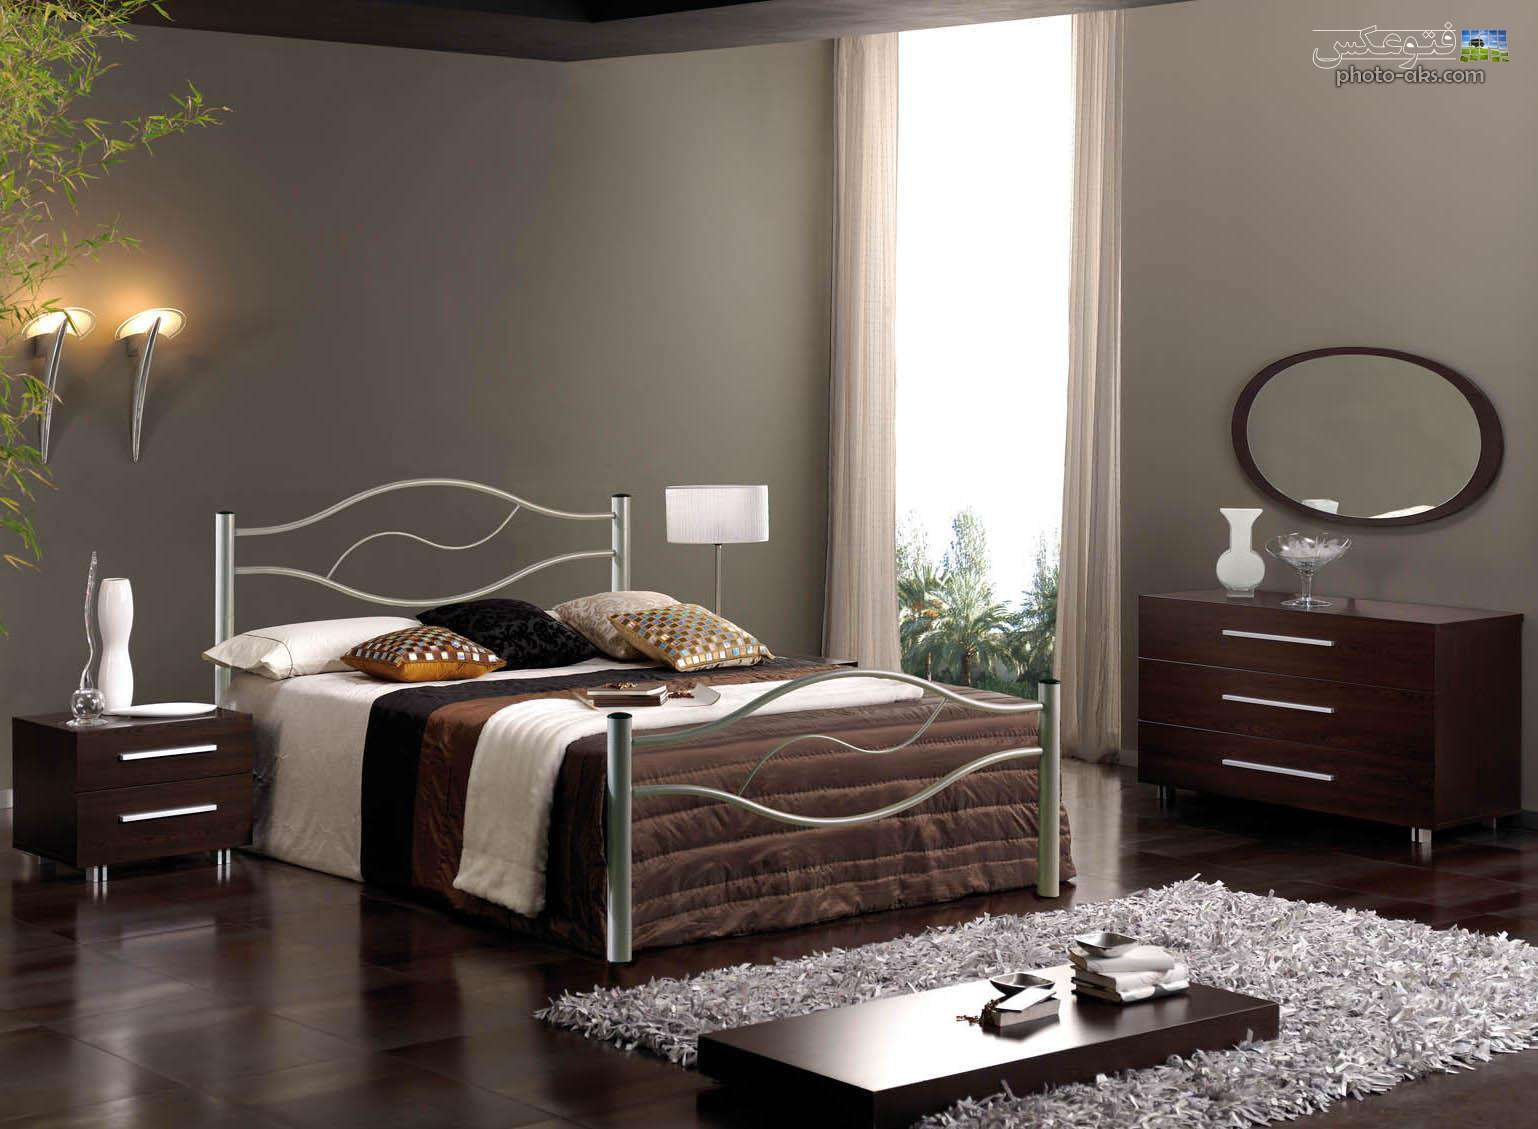 Bedroom Paint Color Ideas Besides Small Master Design